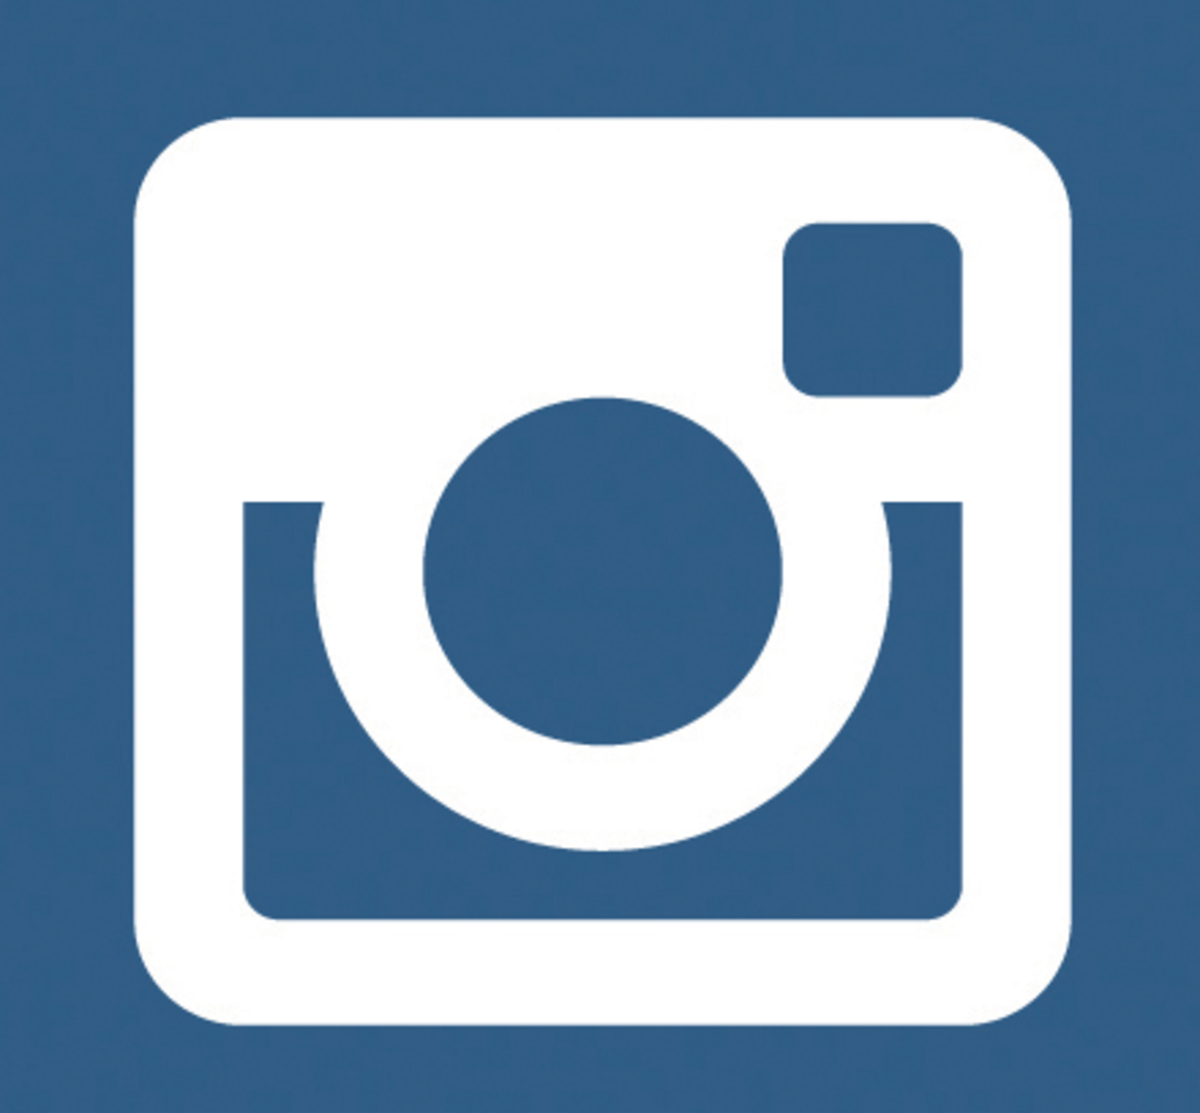 Follow Us On Instagram Logo Png.